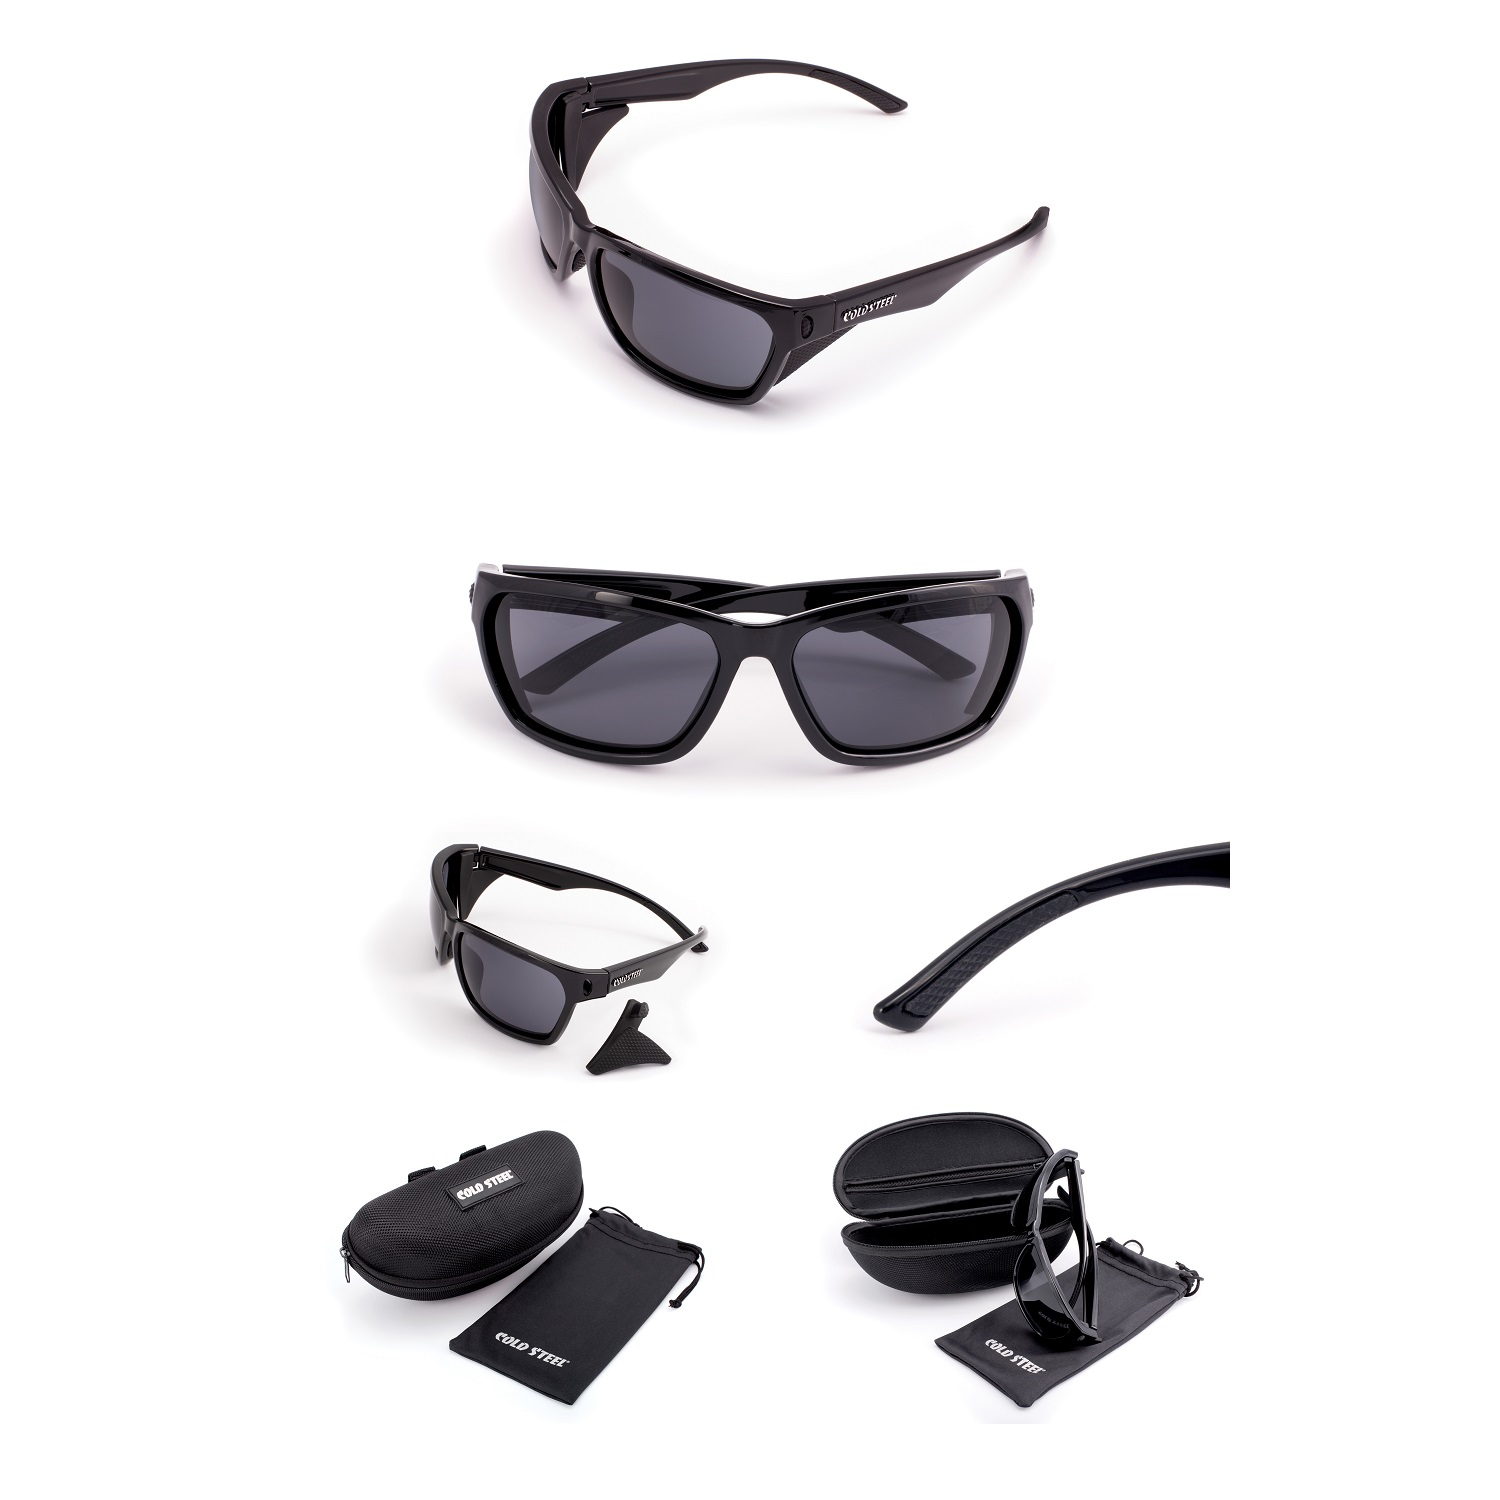 Battle Shades Mark III, Gloss Black Frame, Gray Lens